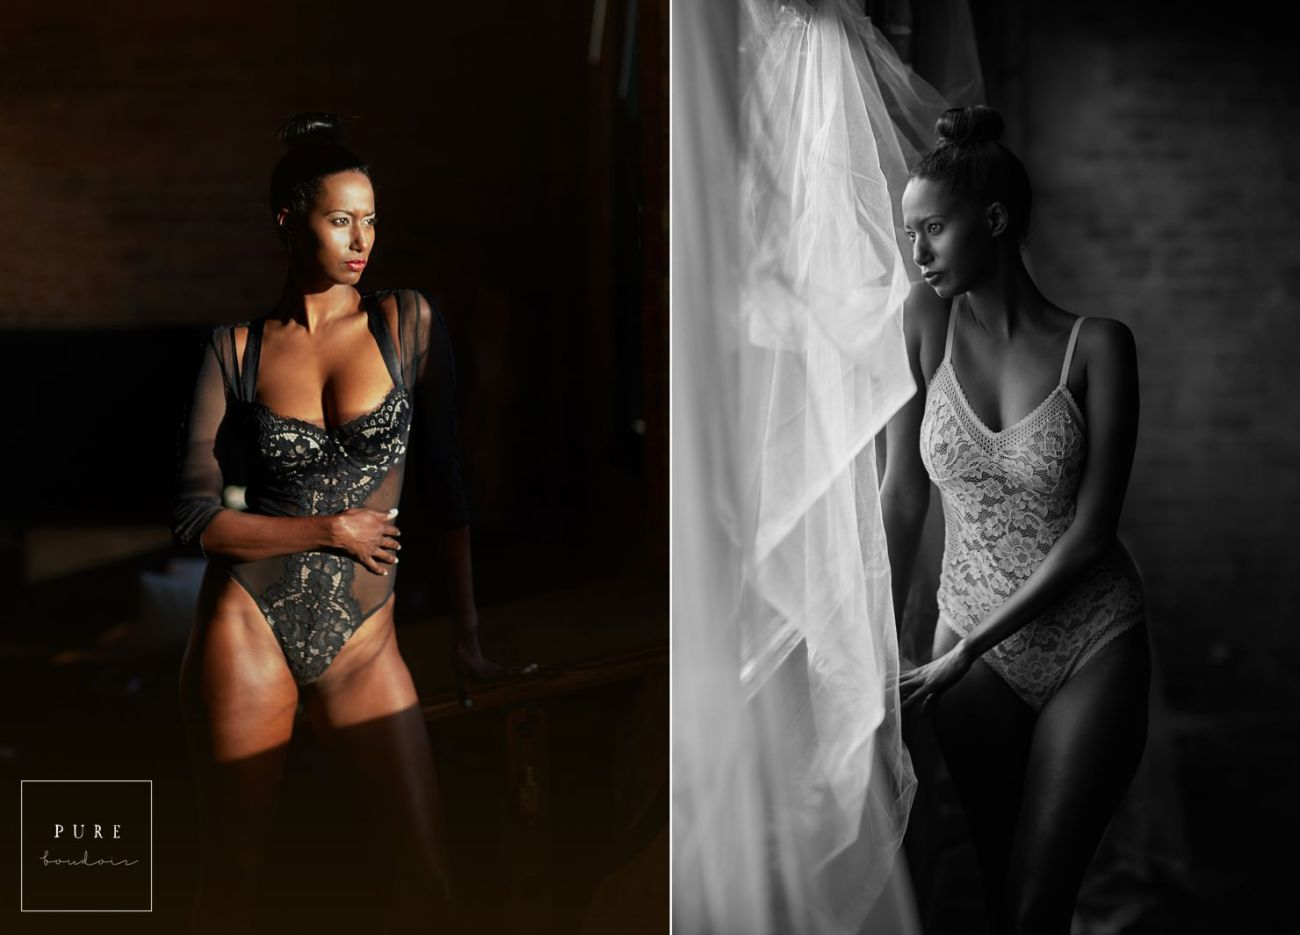 chicago boudoir lingerie bride - Chicago Boudoir Session. It Is All About You.